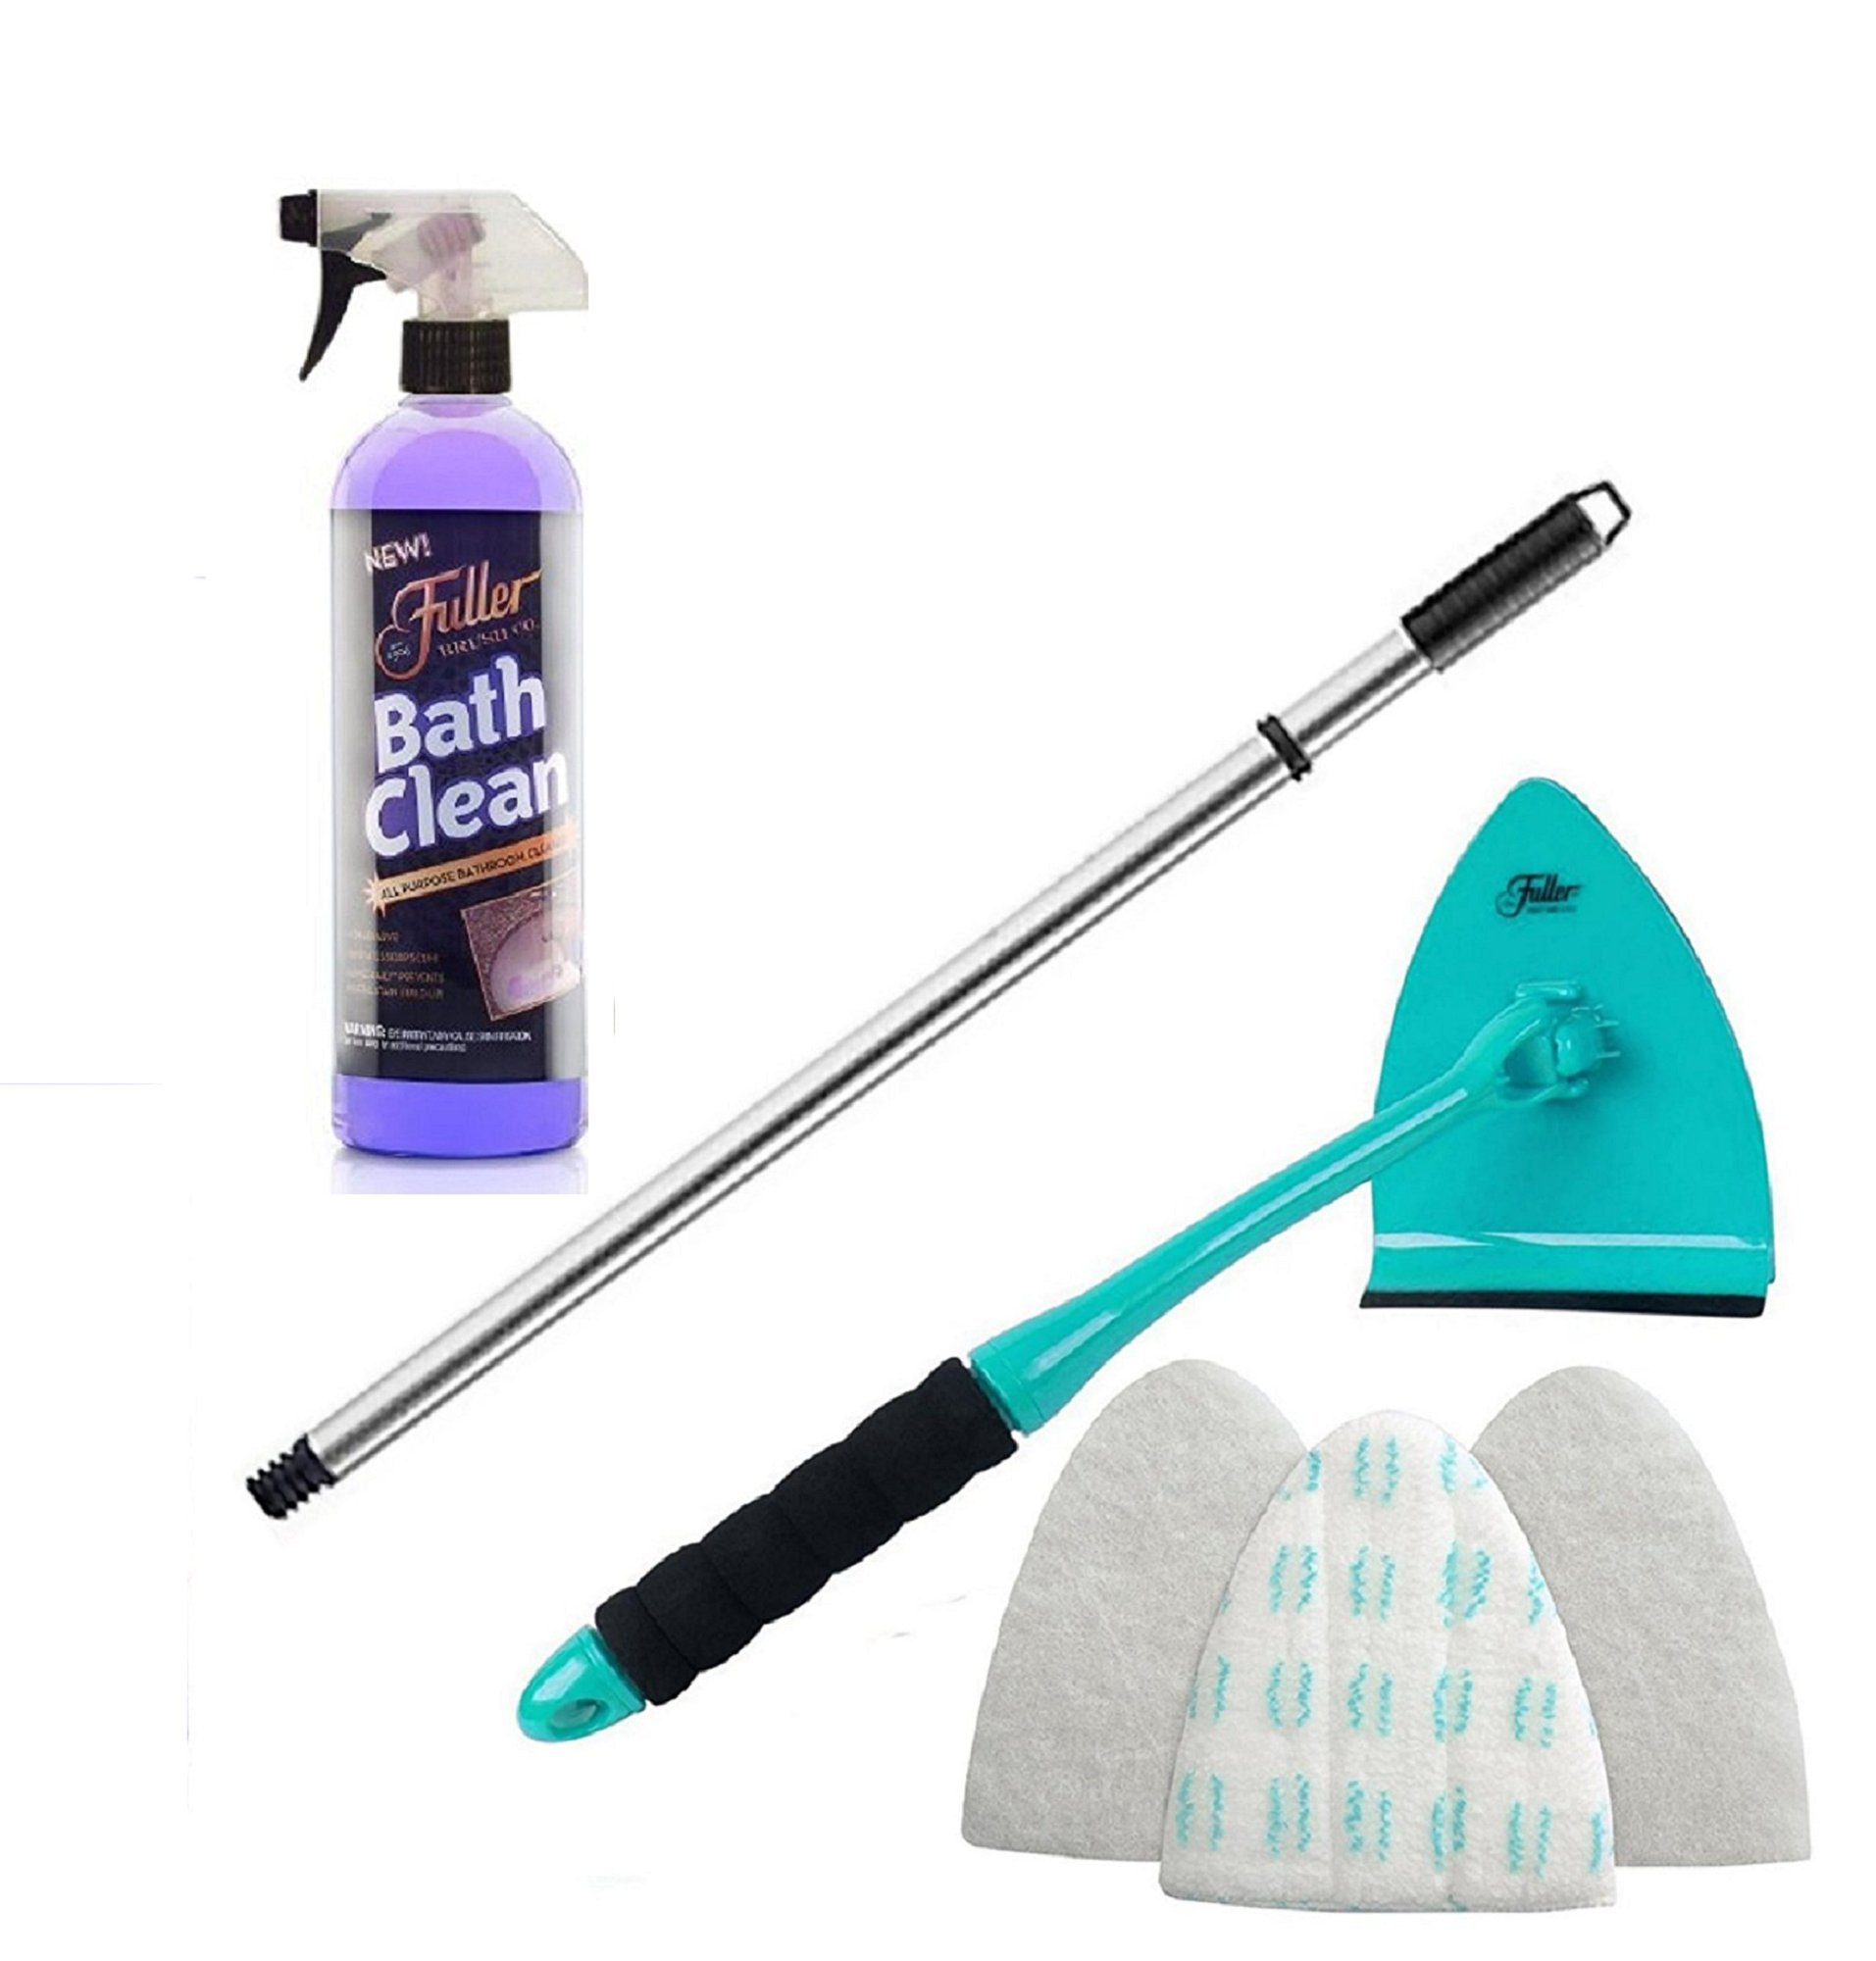 Fuller Brush BathClean Tile and Bathroom Scrubbing Kit with Big EZ Extendable Reach Bath Scrubber & Squeegee by Fuller Brush (Image #1)